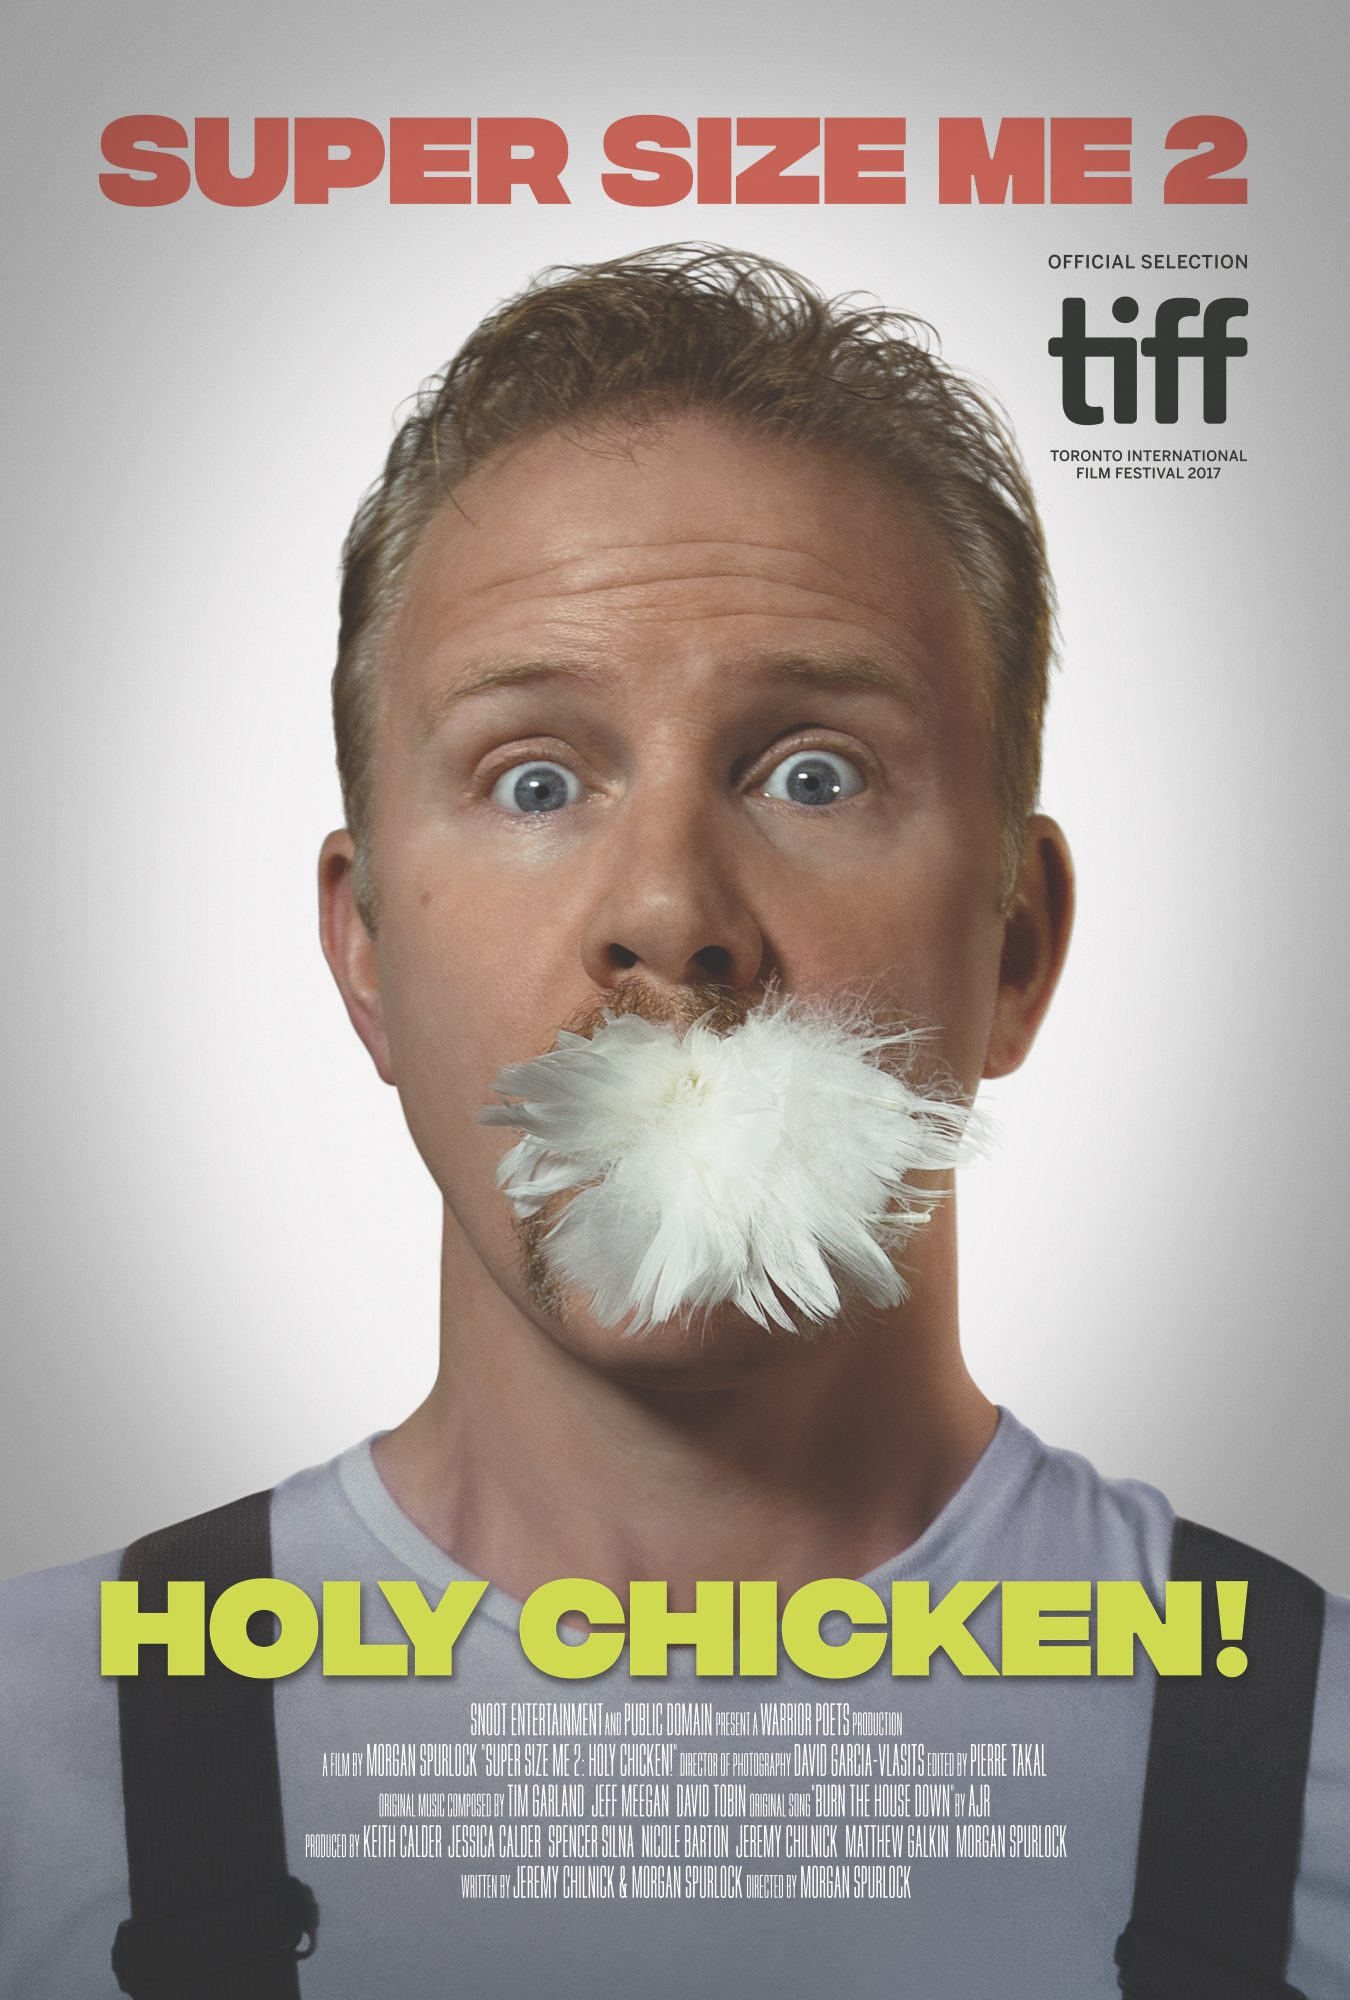 Morgan Spurlock's long-awaited 'Super Size Me' sequel is here: See the new posters